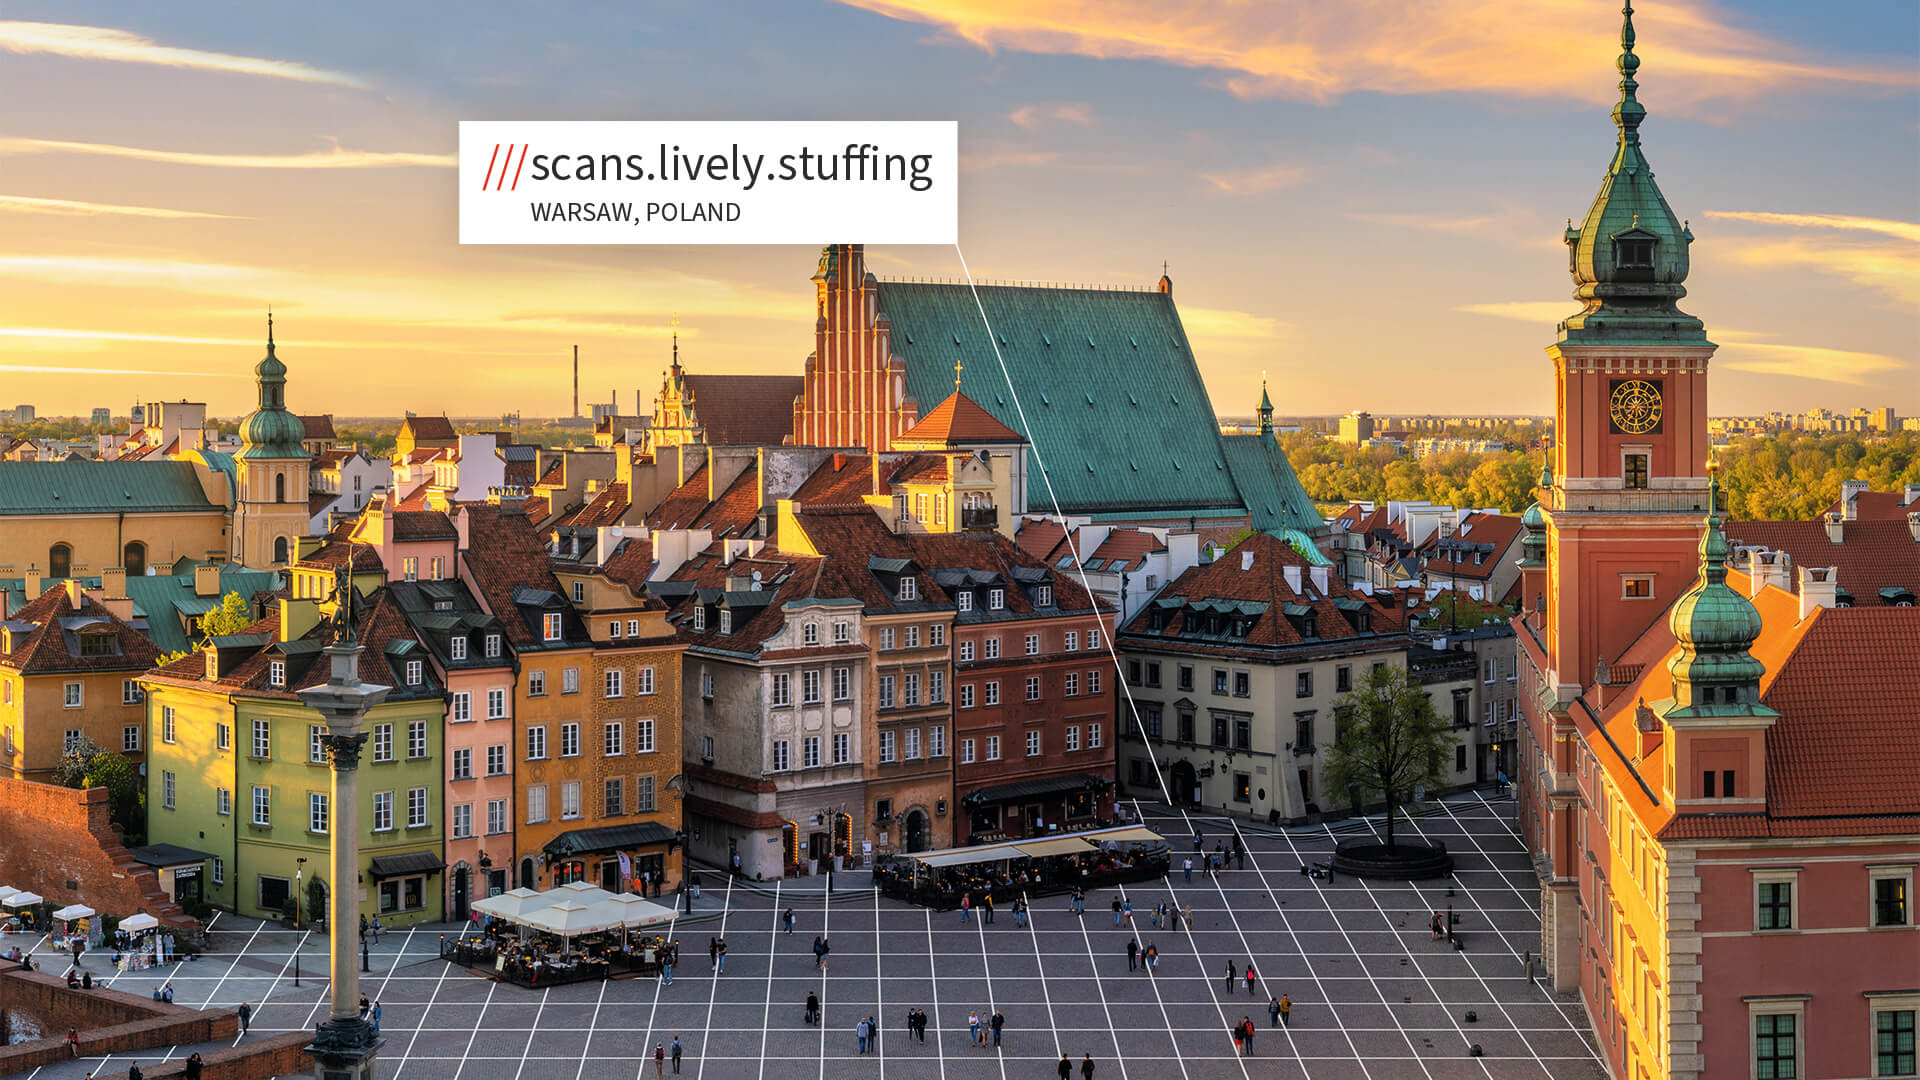 Warsaw square with what3words address